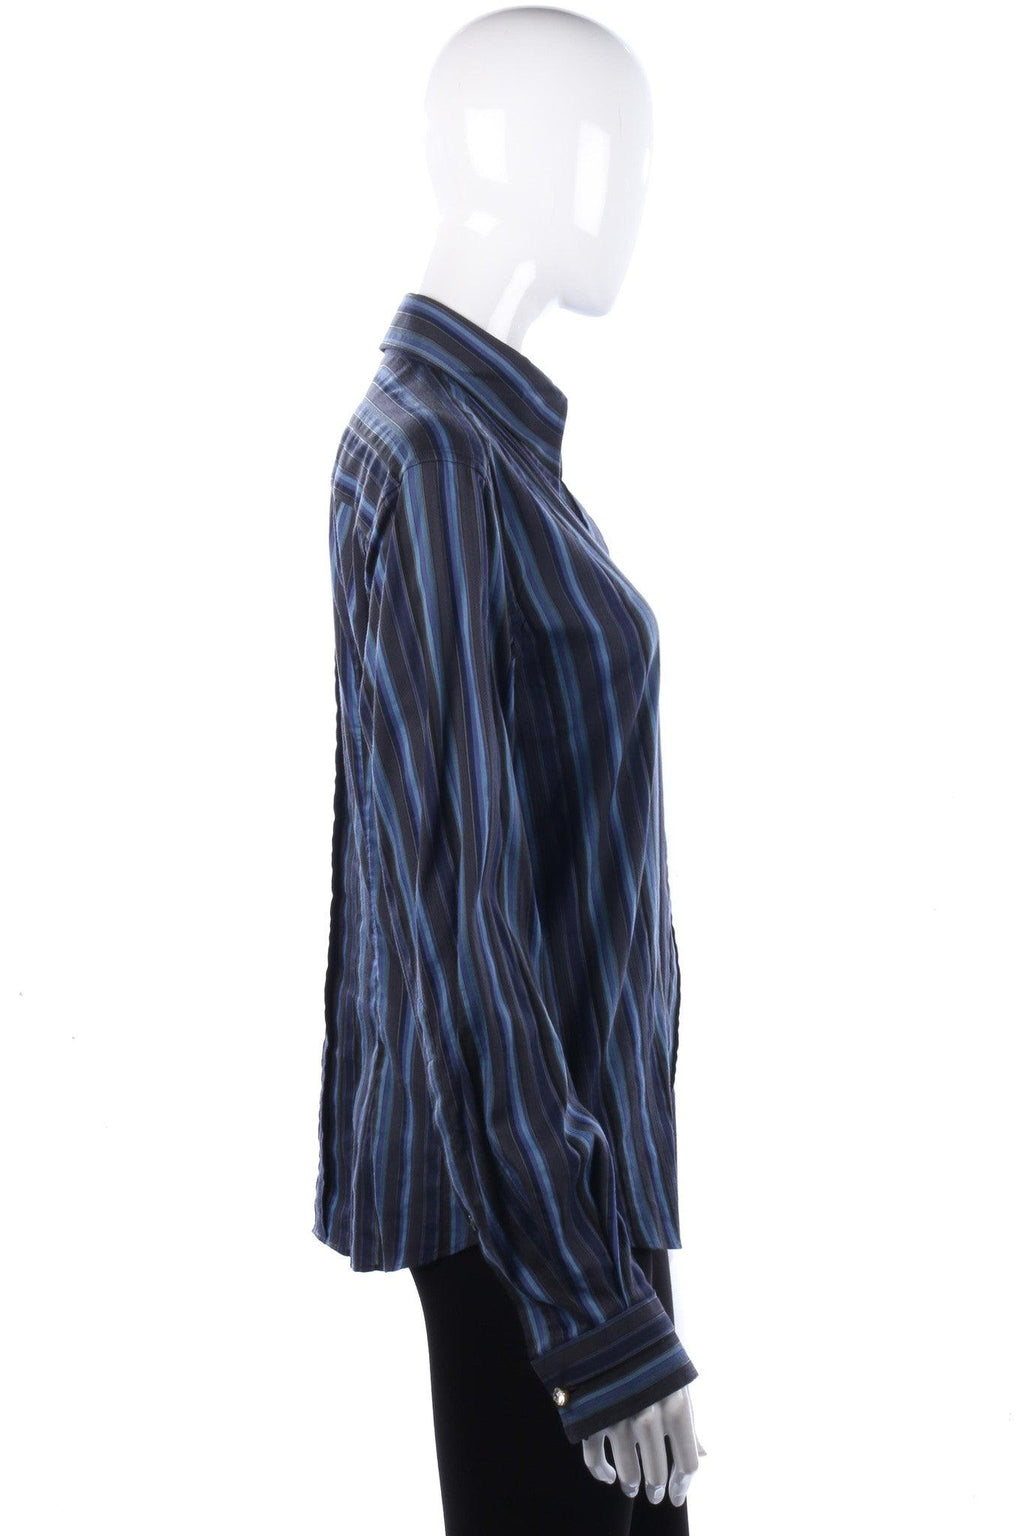 Dolce & Gabbana Cotton Blue and Grey Striped Ladies Shirt IT44 UK 12